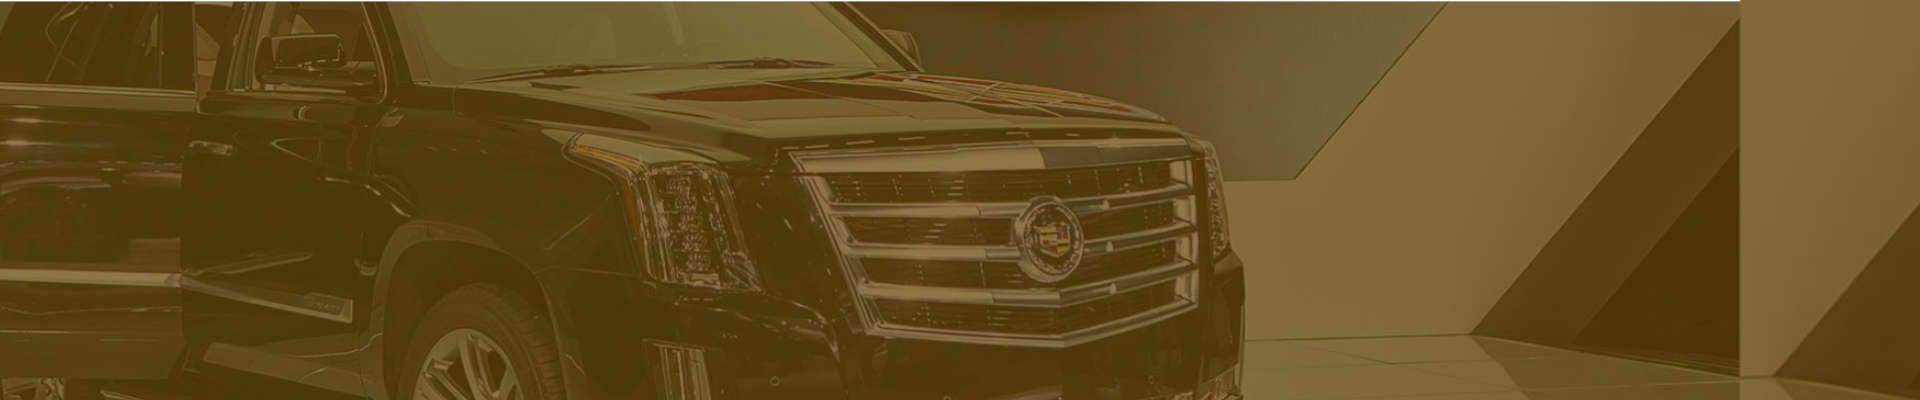 Affordable limousine services for the Sf Bay Area